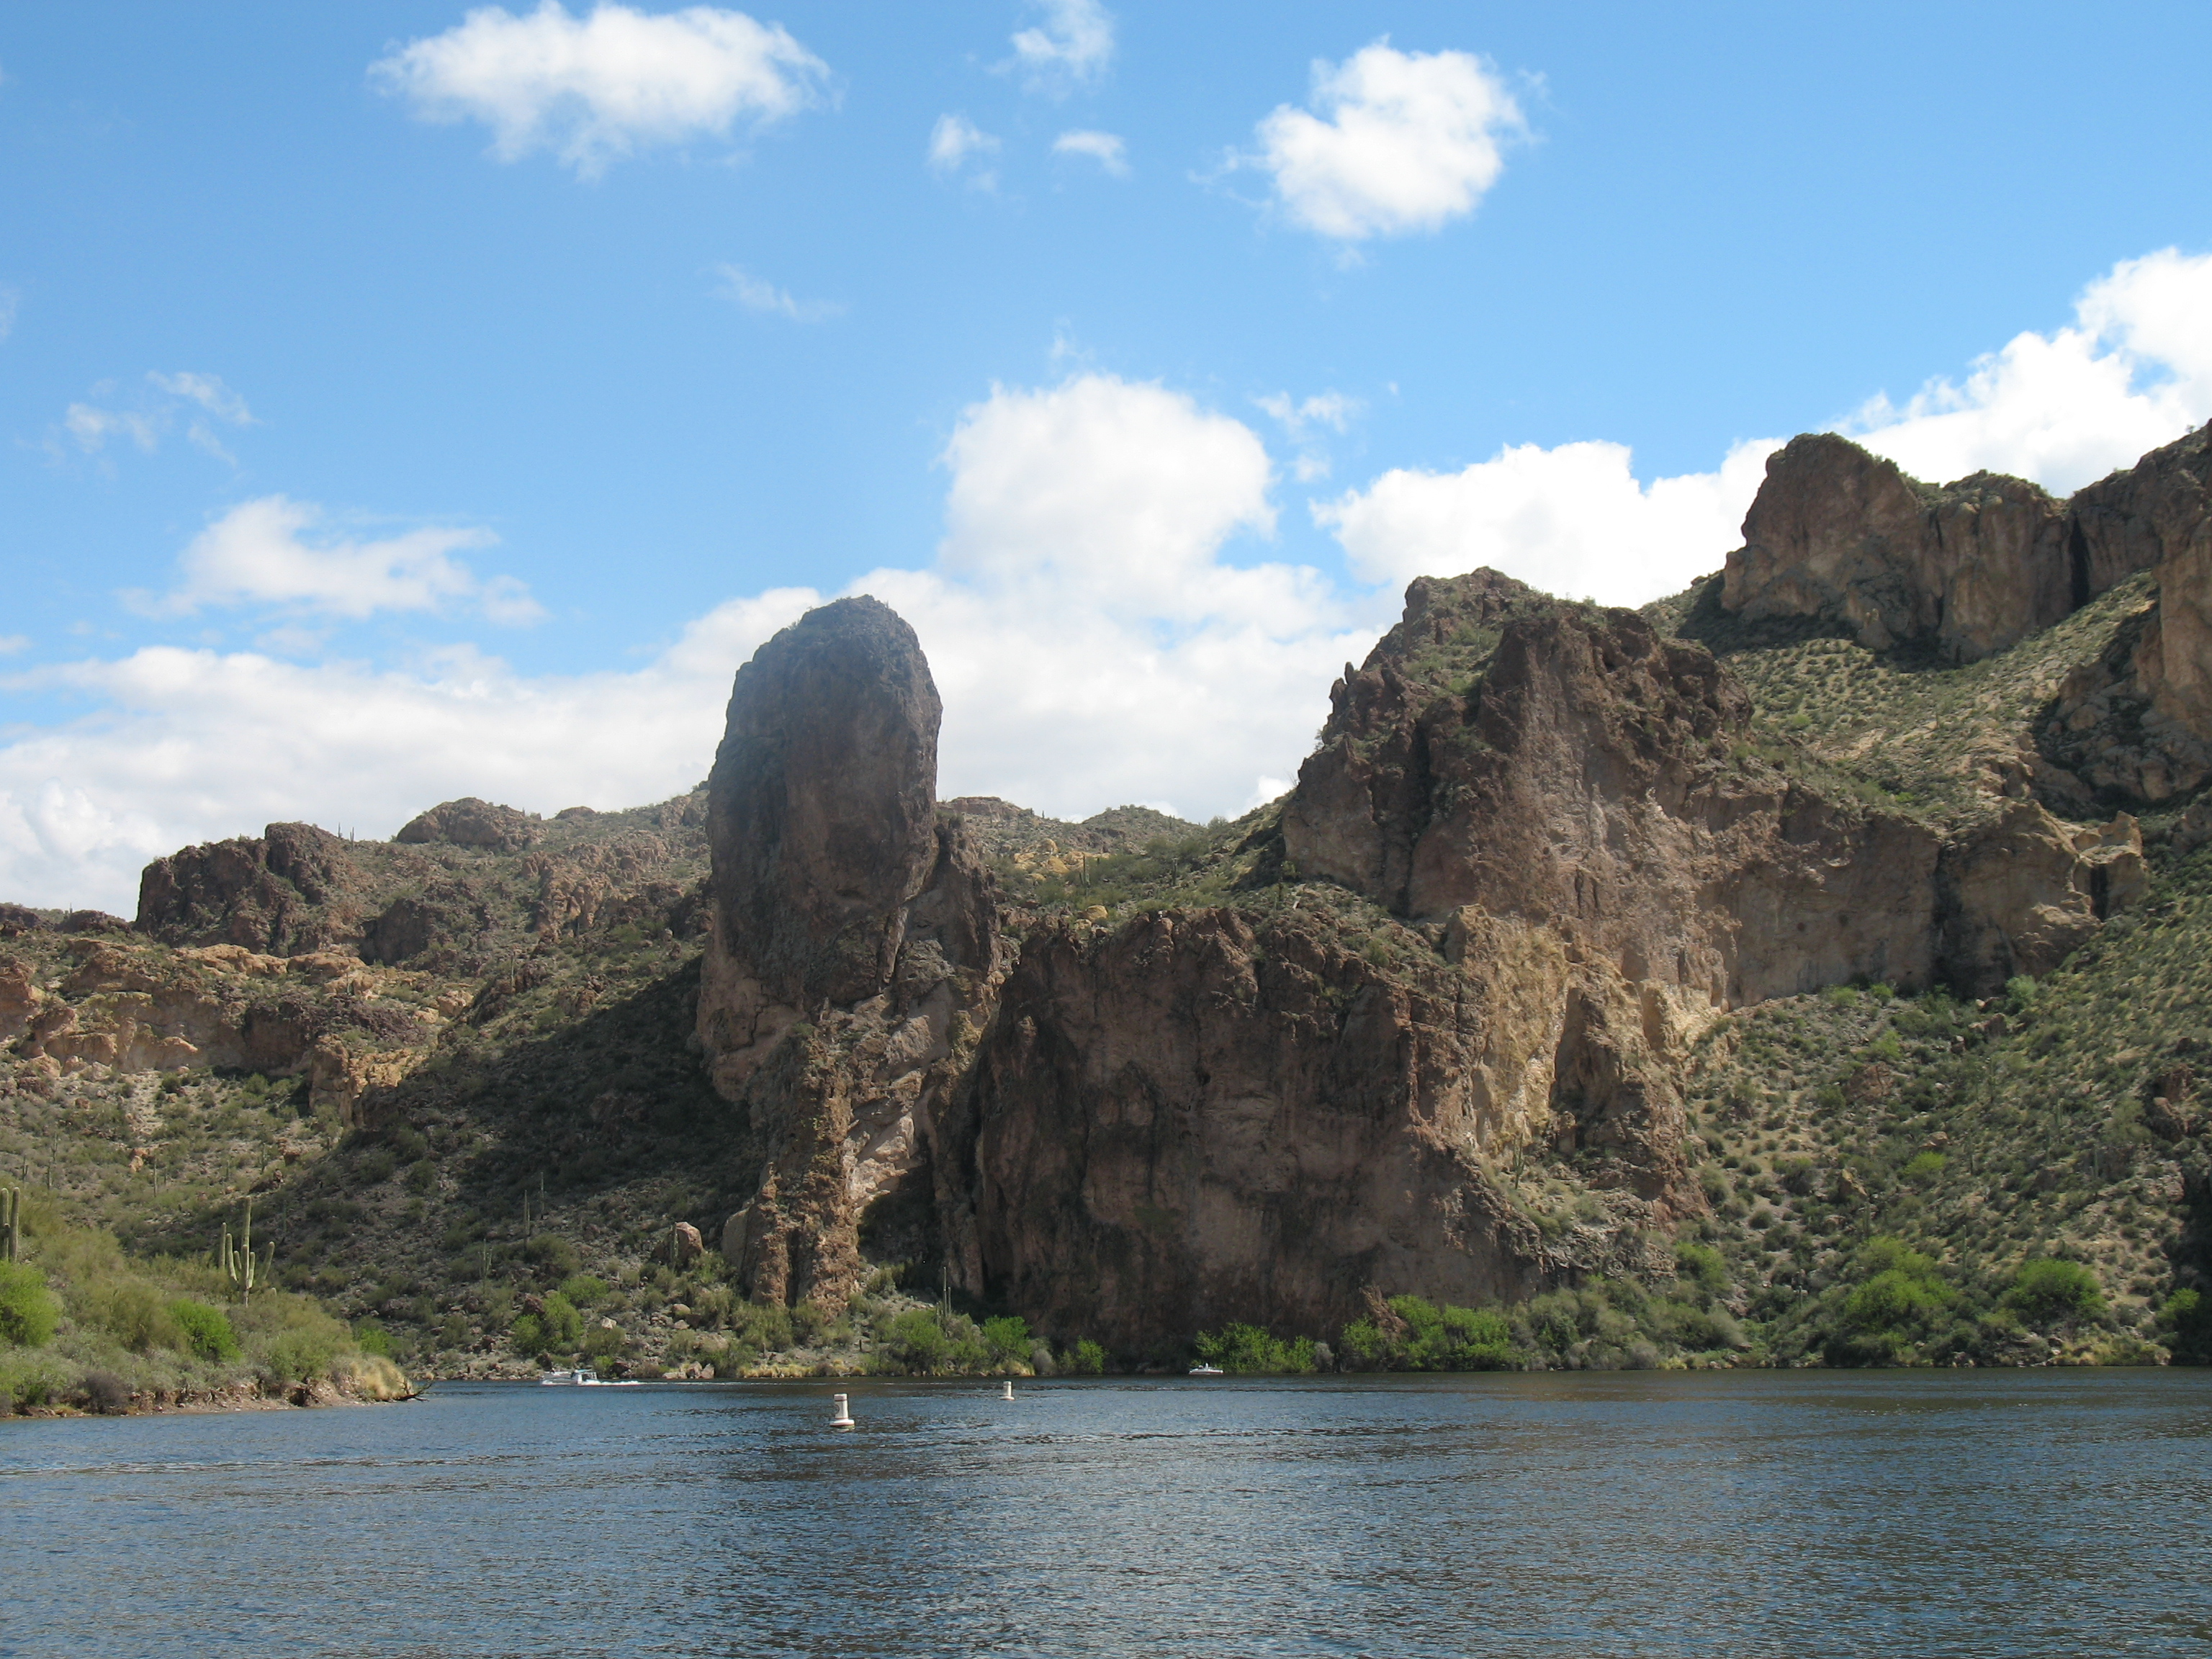 canyon_lake-arizona-and_land_features-4